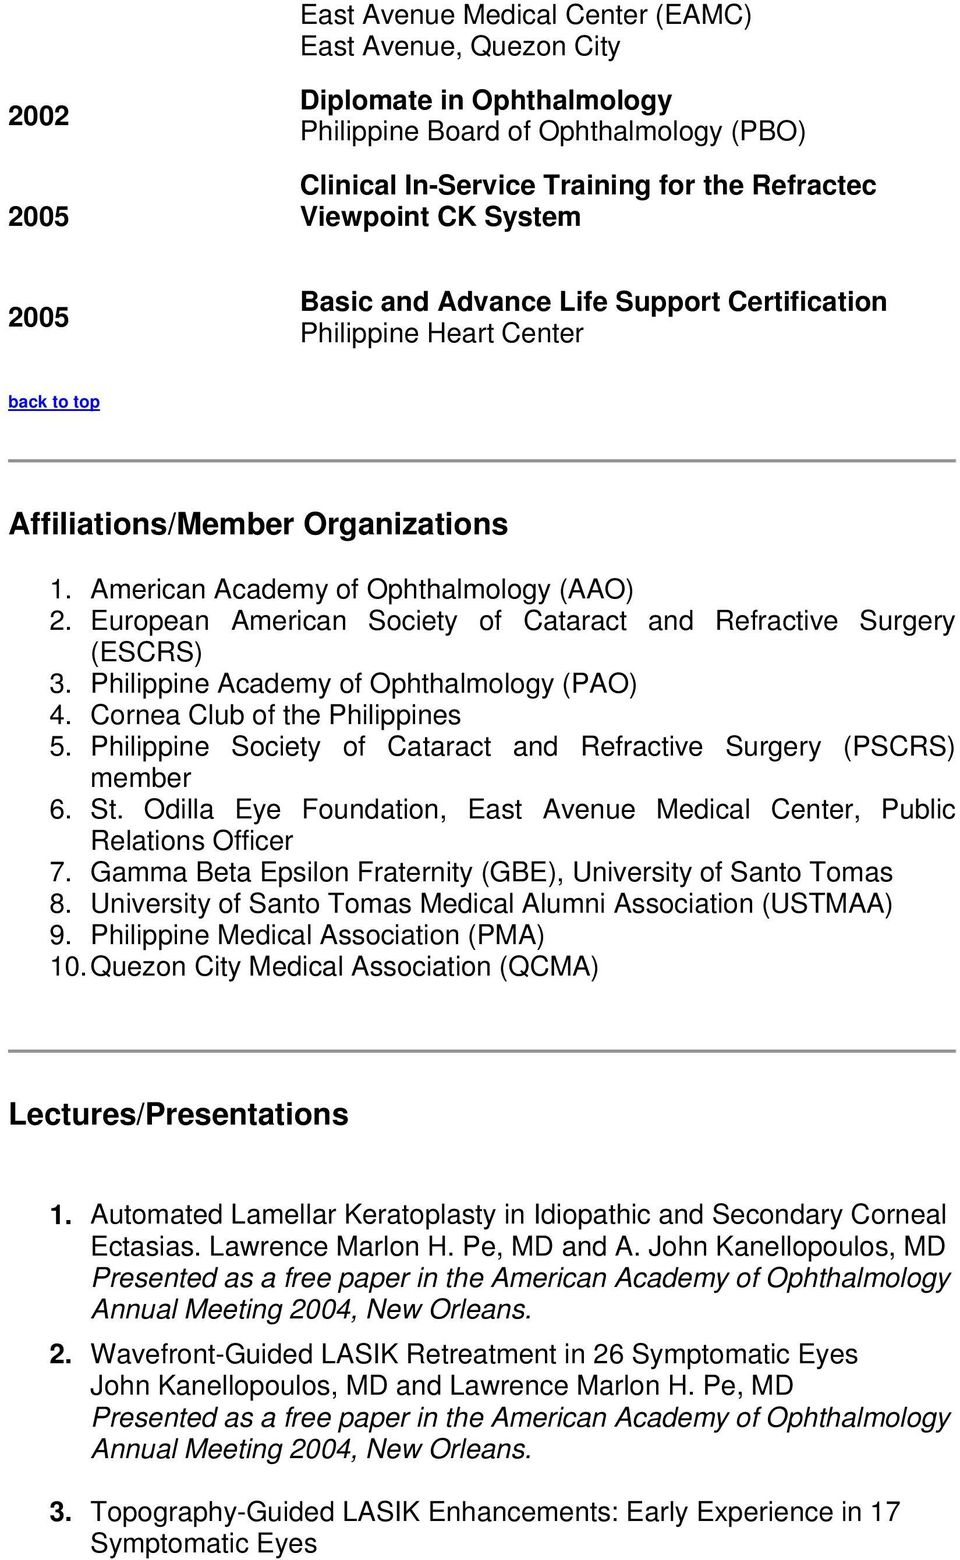 European American Society of Cataract and Refractive Surgery (ESCRS) 3. Philippine Academy of Ophthalmology (PAO) 4. Cornea Club of the Philippines 5.